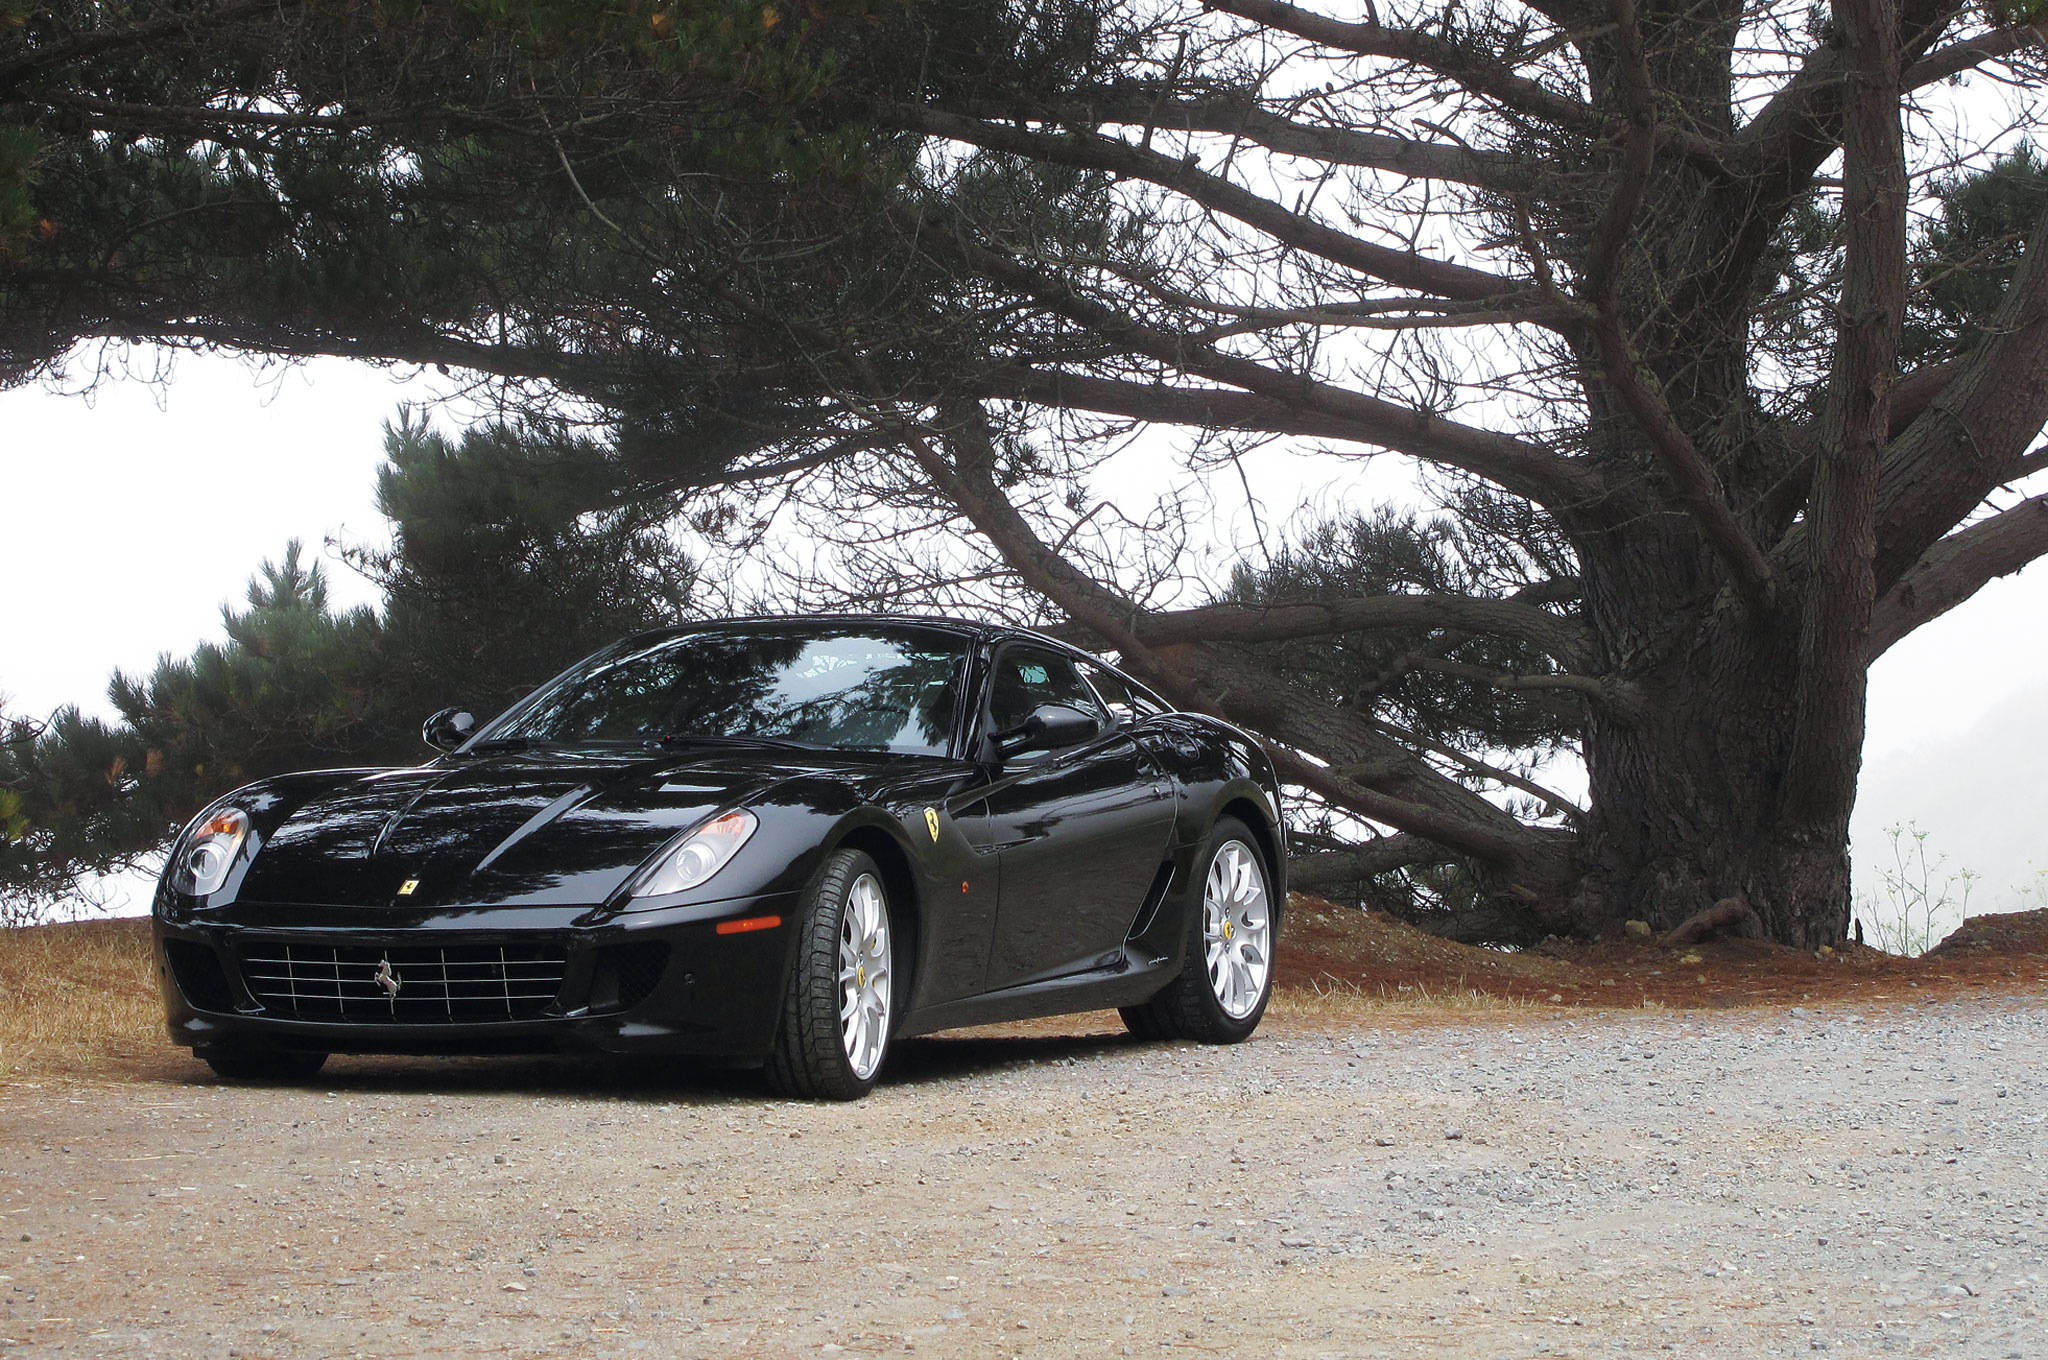 Everyday Exotics: A High-Dollar Exotic as Your Daily Driver